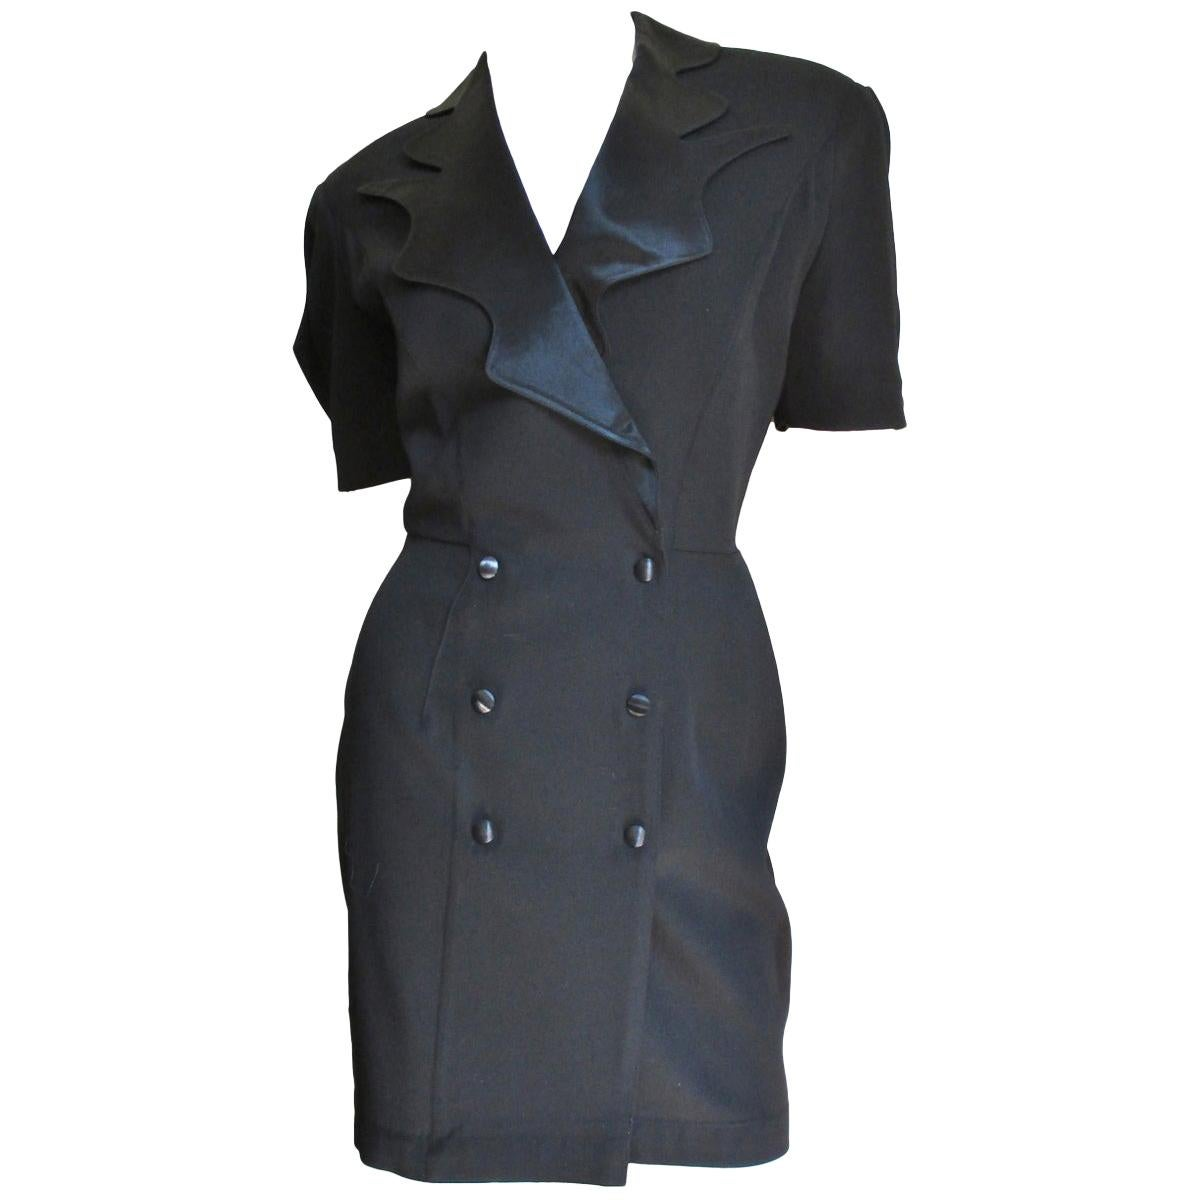 8150d10dd Vintage Thierry Mugler Clothing - 323 For Sale at 1stdibs